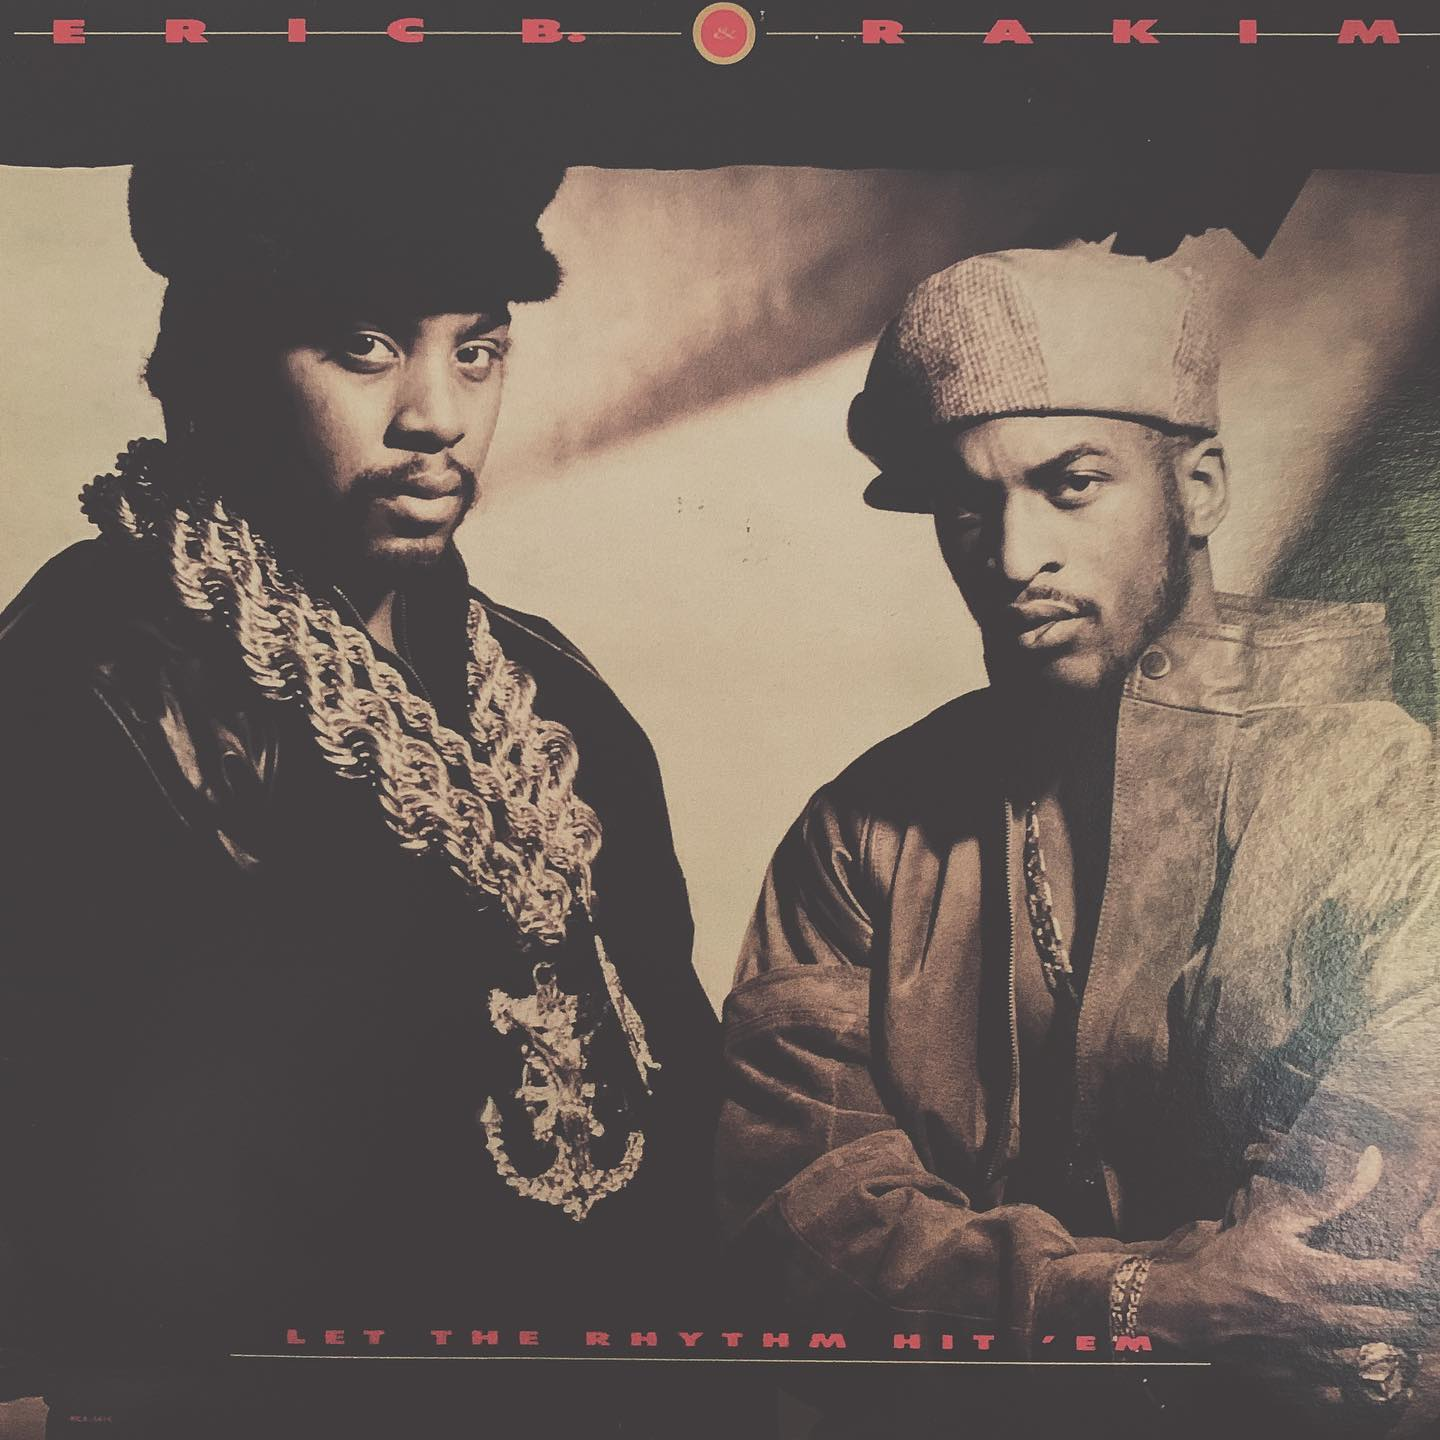 "#ondeck - Eric B and Rakim ""Let the Rhythm Hit 'Em"" - just some old school classic MCs"